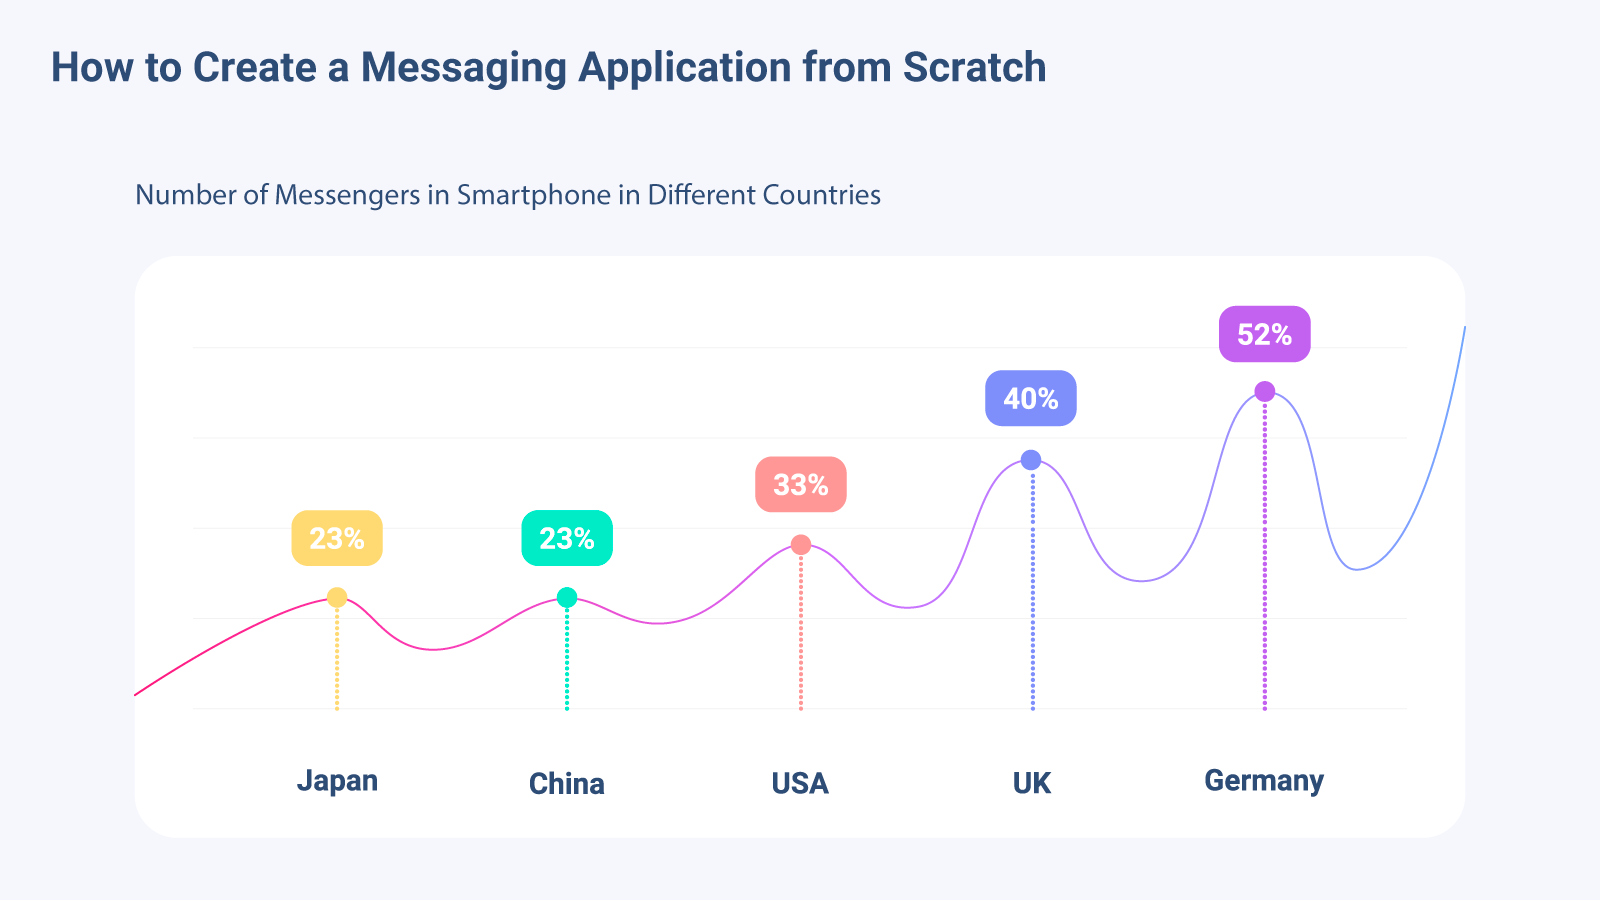 How many messengers are using smartphone owners